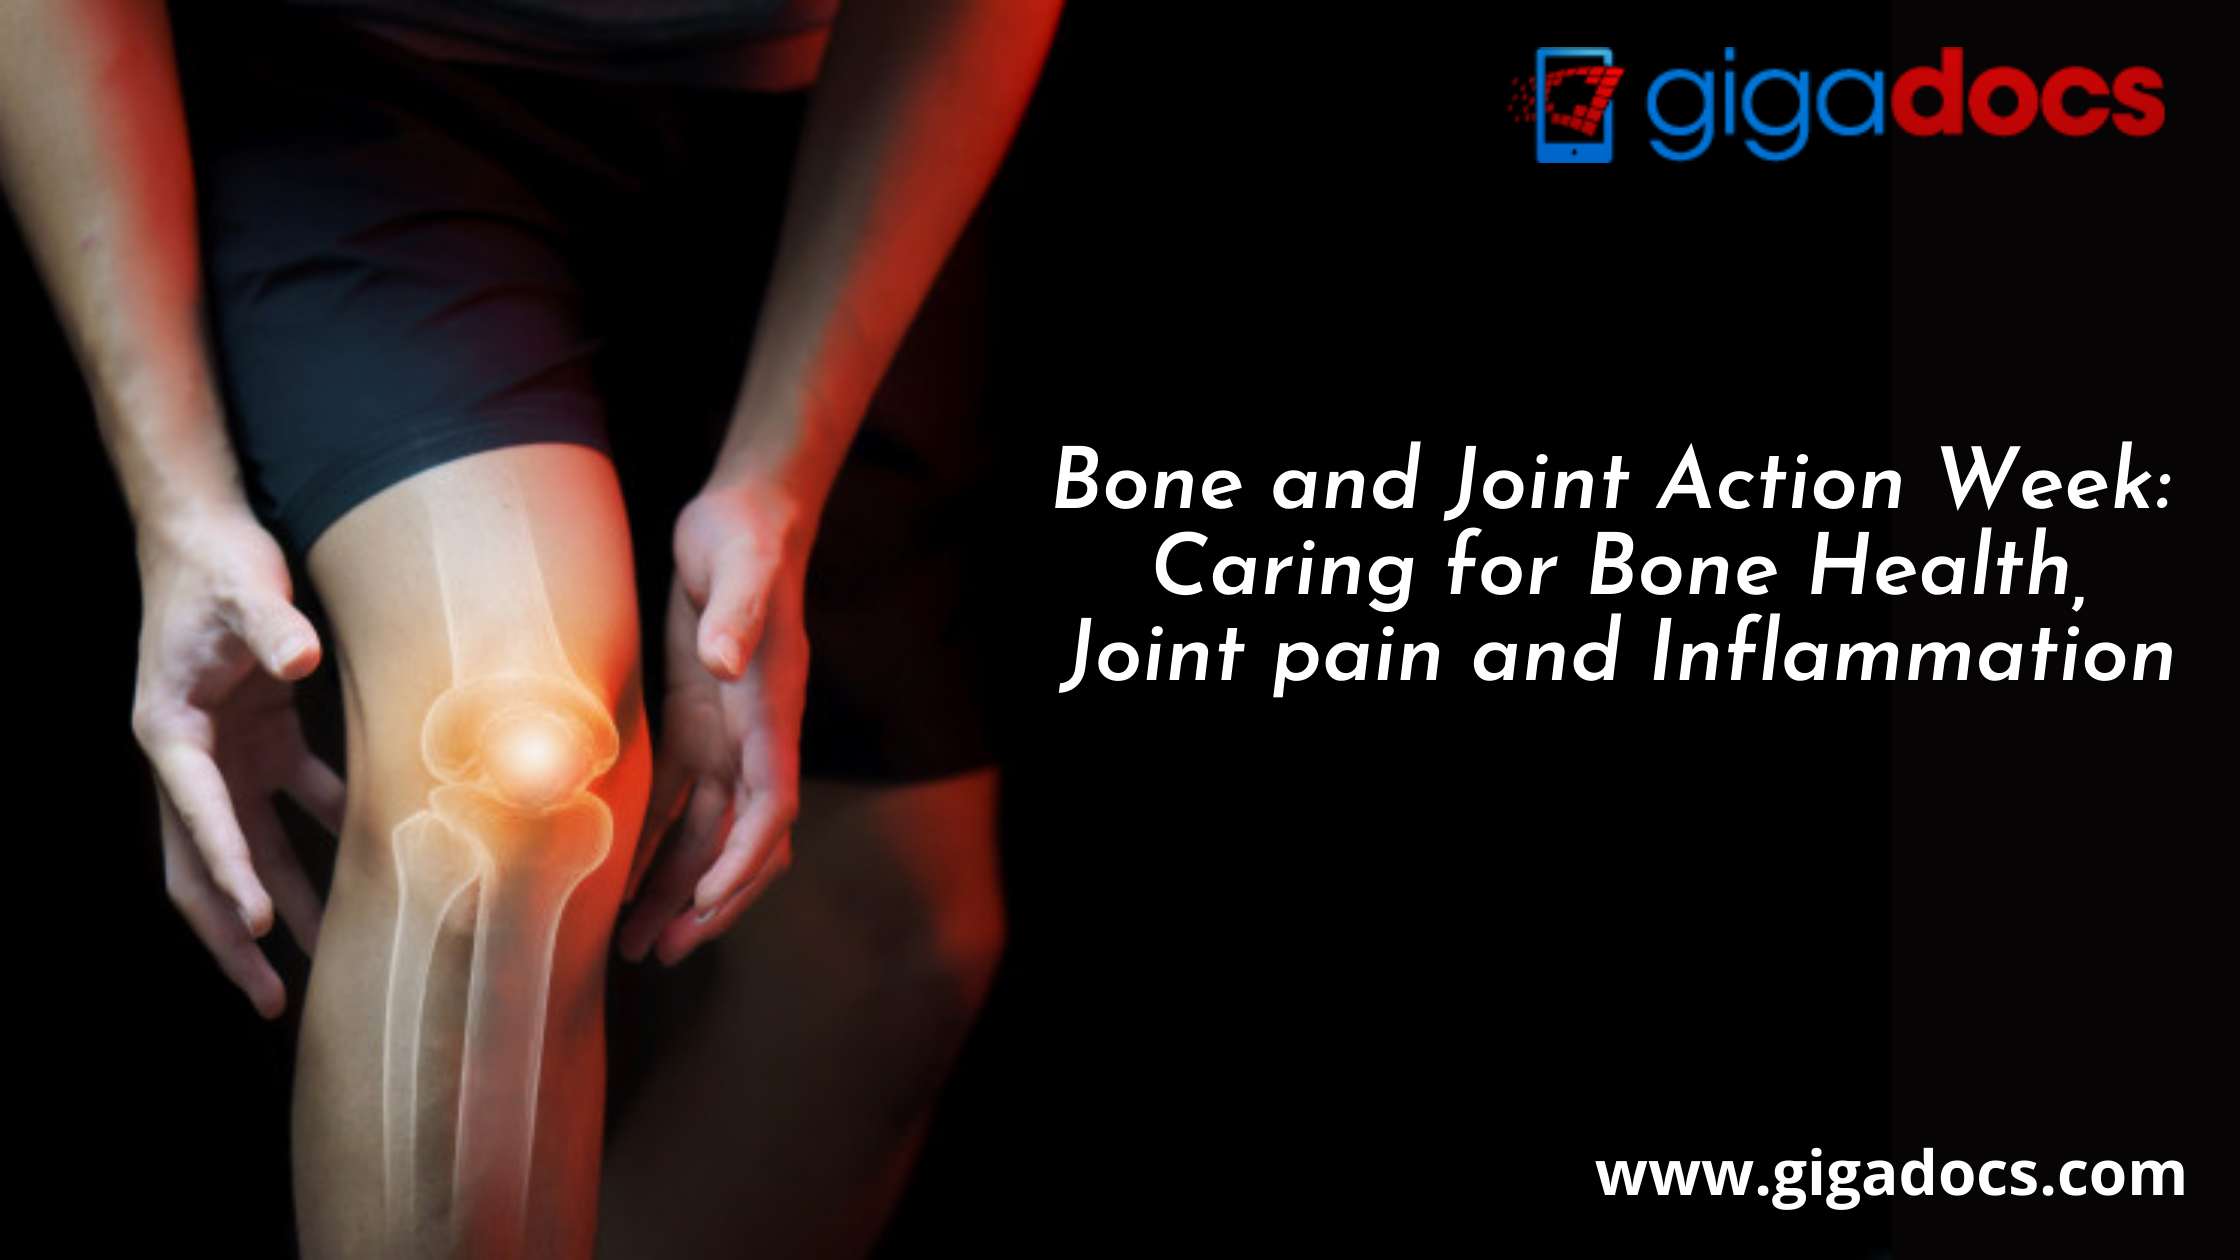 Bone and Joint Action Week: Caring for Bone Health, Joint Pain and Inflammation